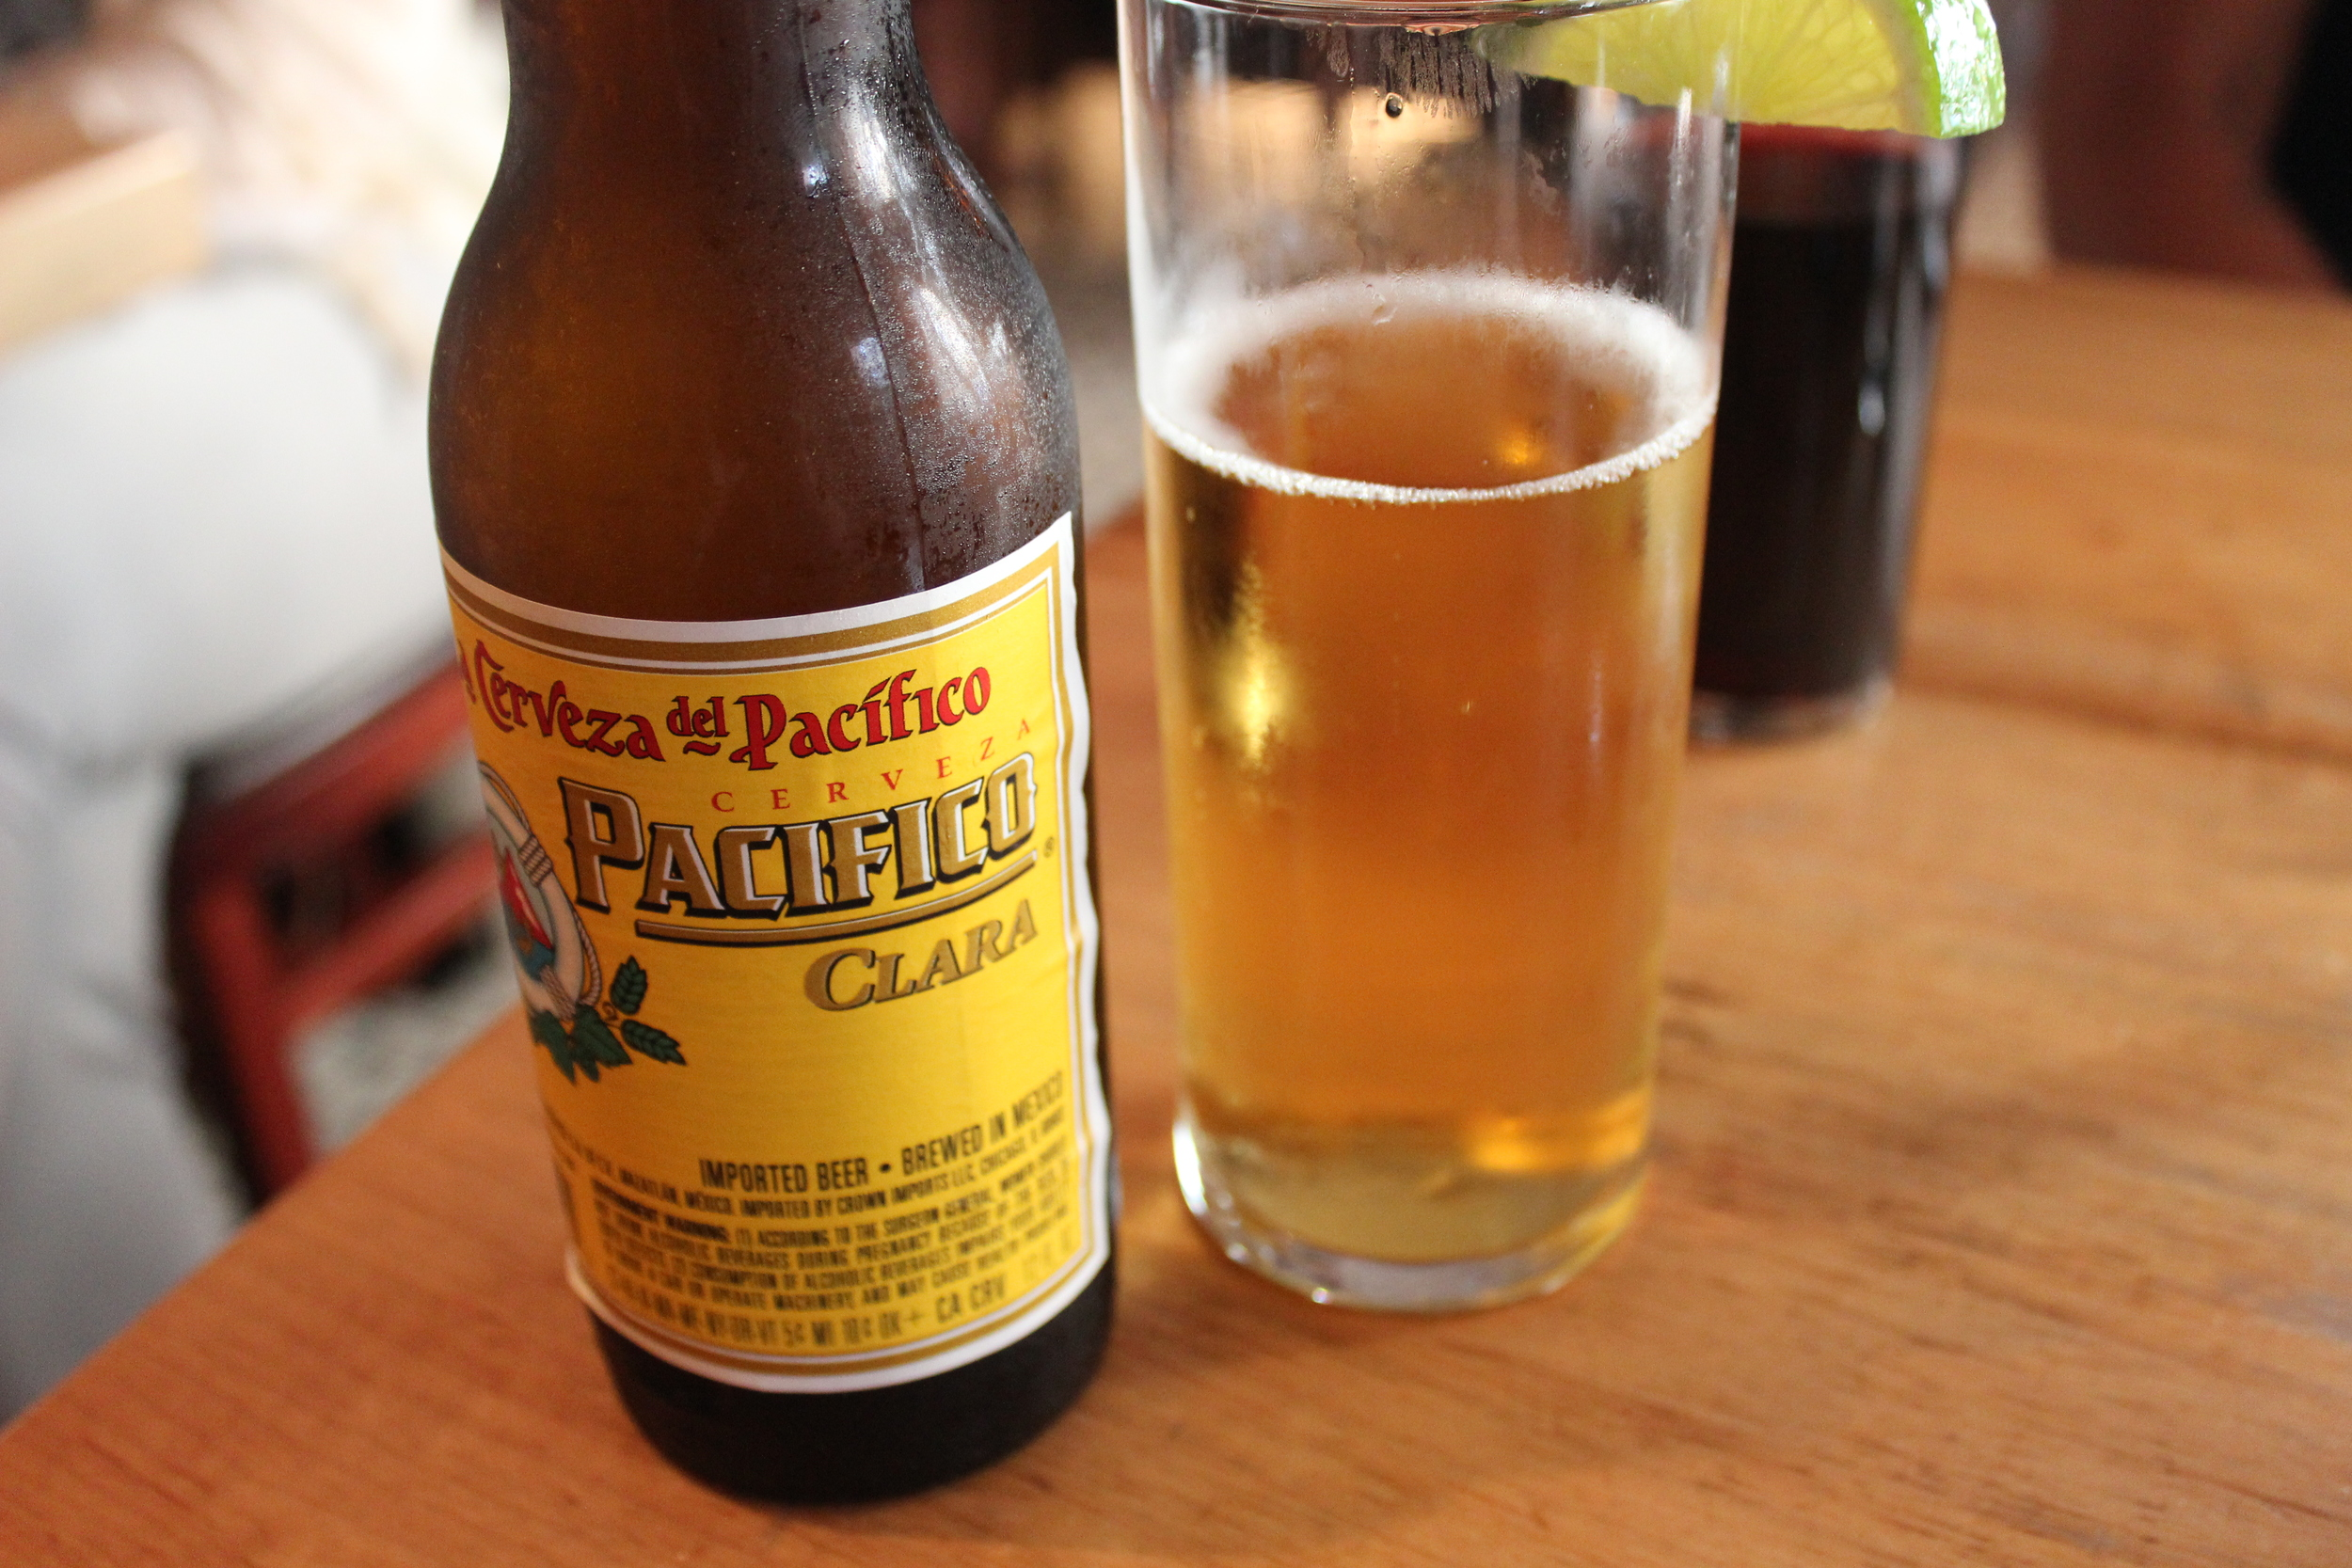 They were out of Peroni, so I had to go with Pacifico